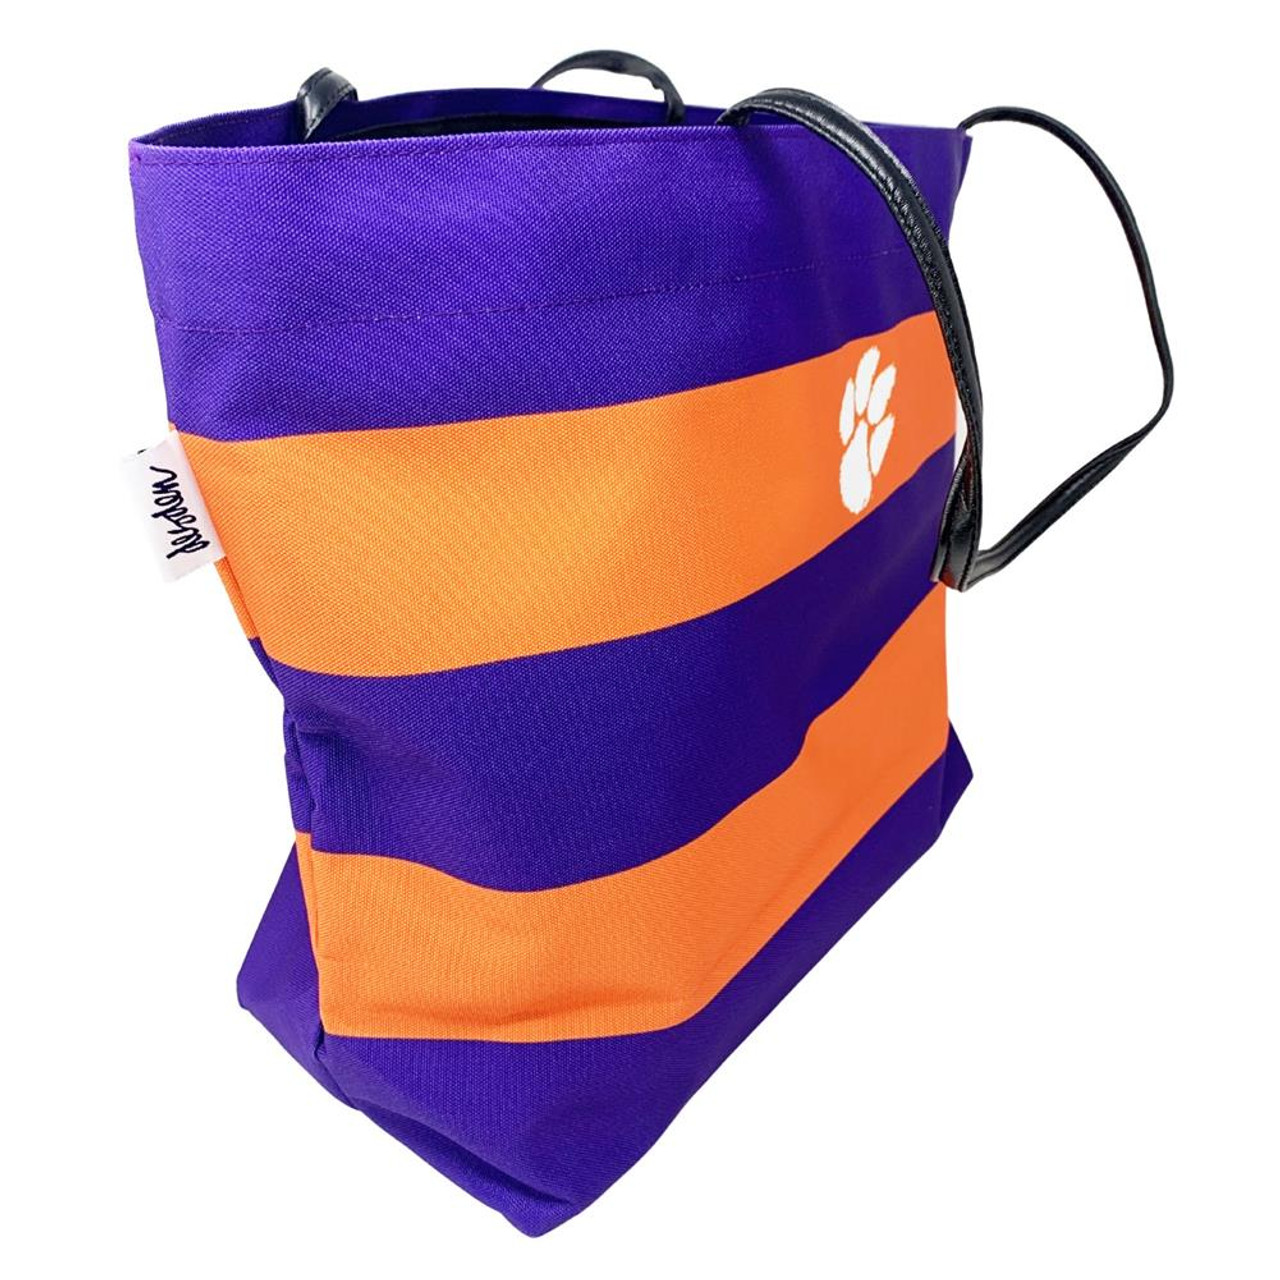 Clemson University Tigers Tote Striped Rugby Tote Bag